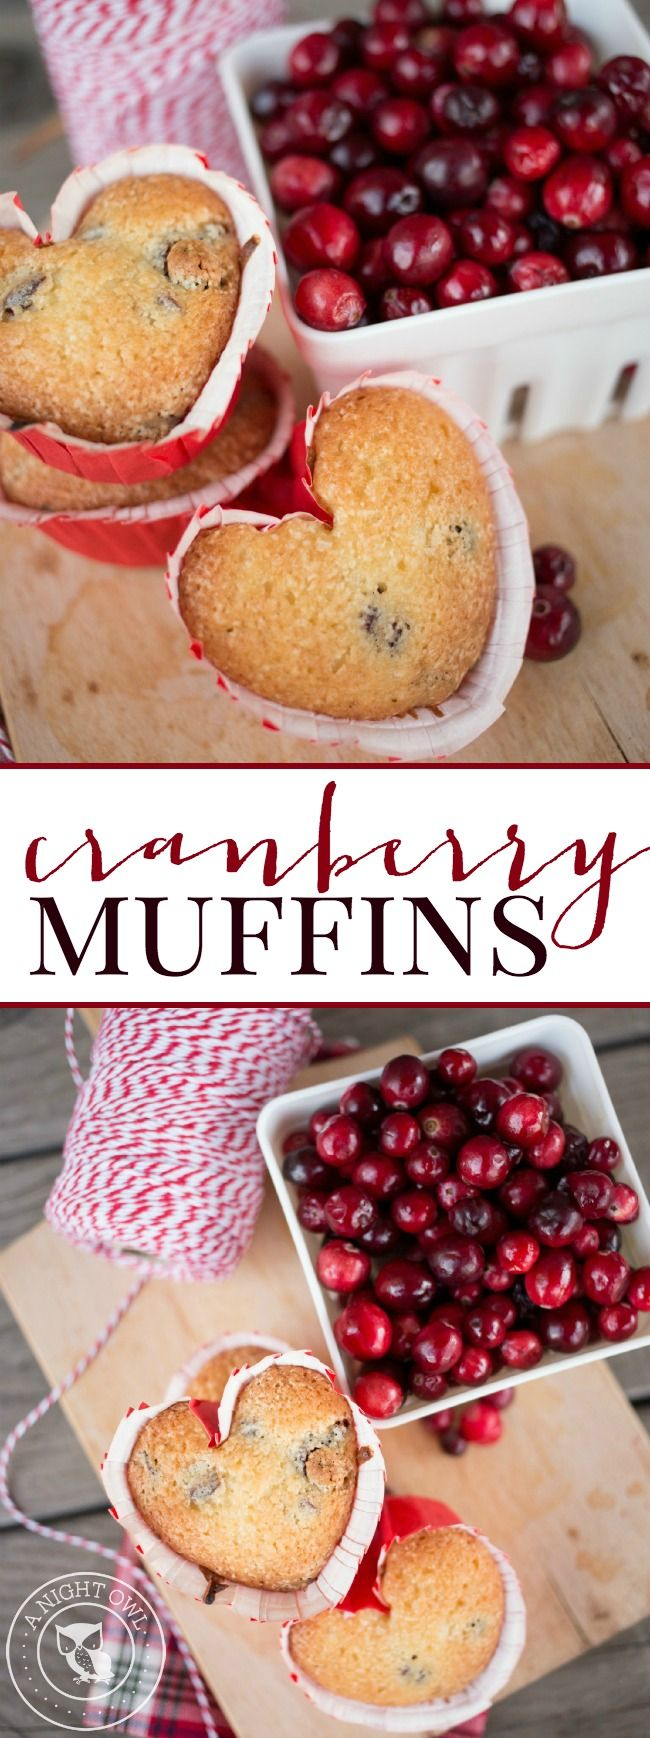 These delicious and Easy Cranberry Muffins are perfect for breakfast or a sweet afternoon treat!